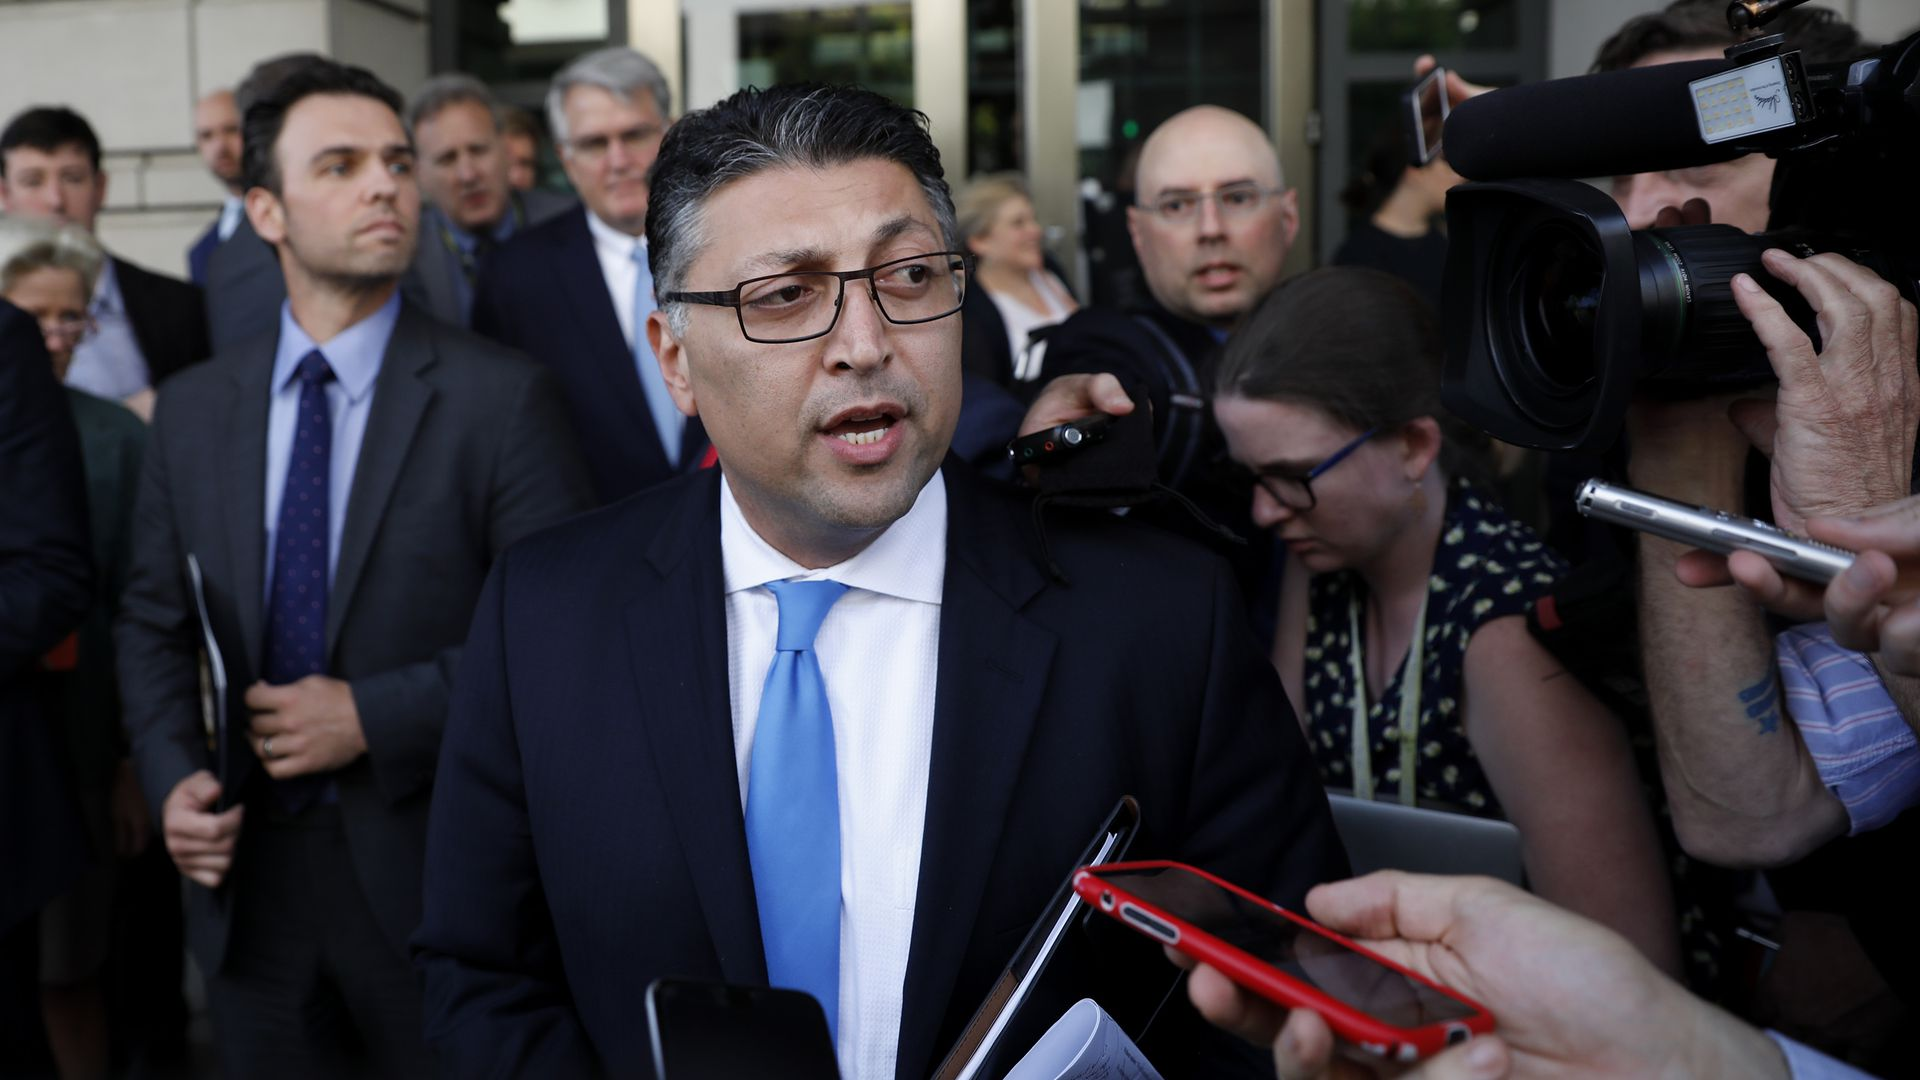 Justice Department antitrust chief speaks to reporters in a scrum